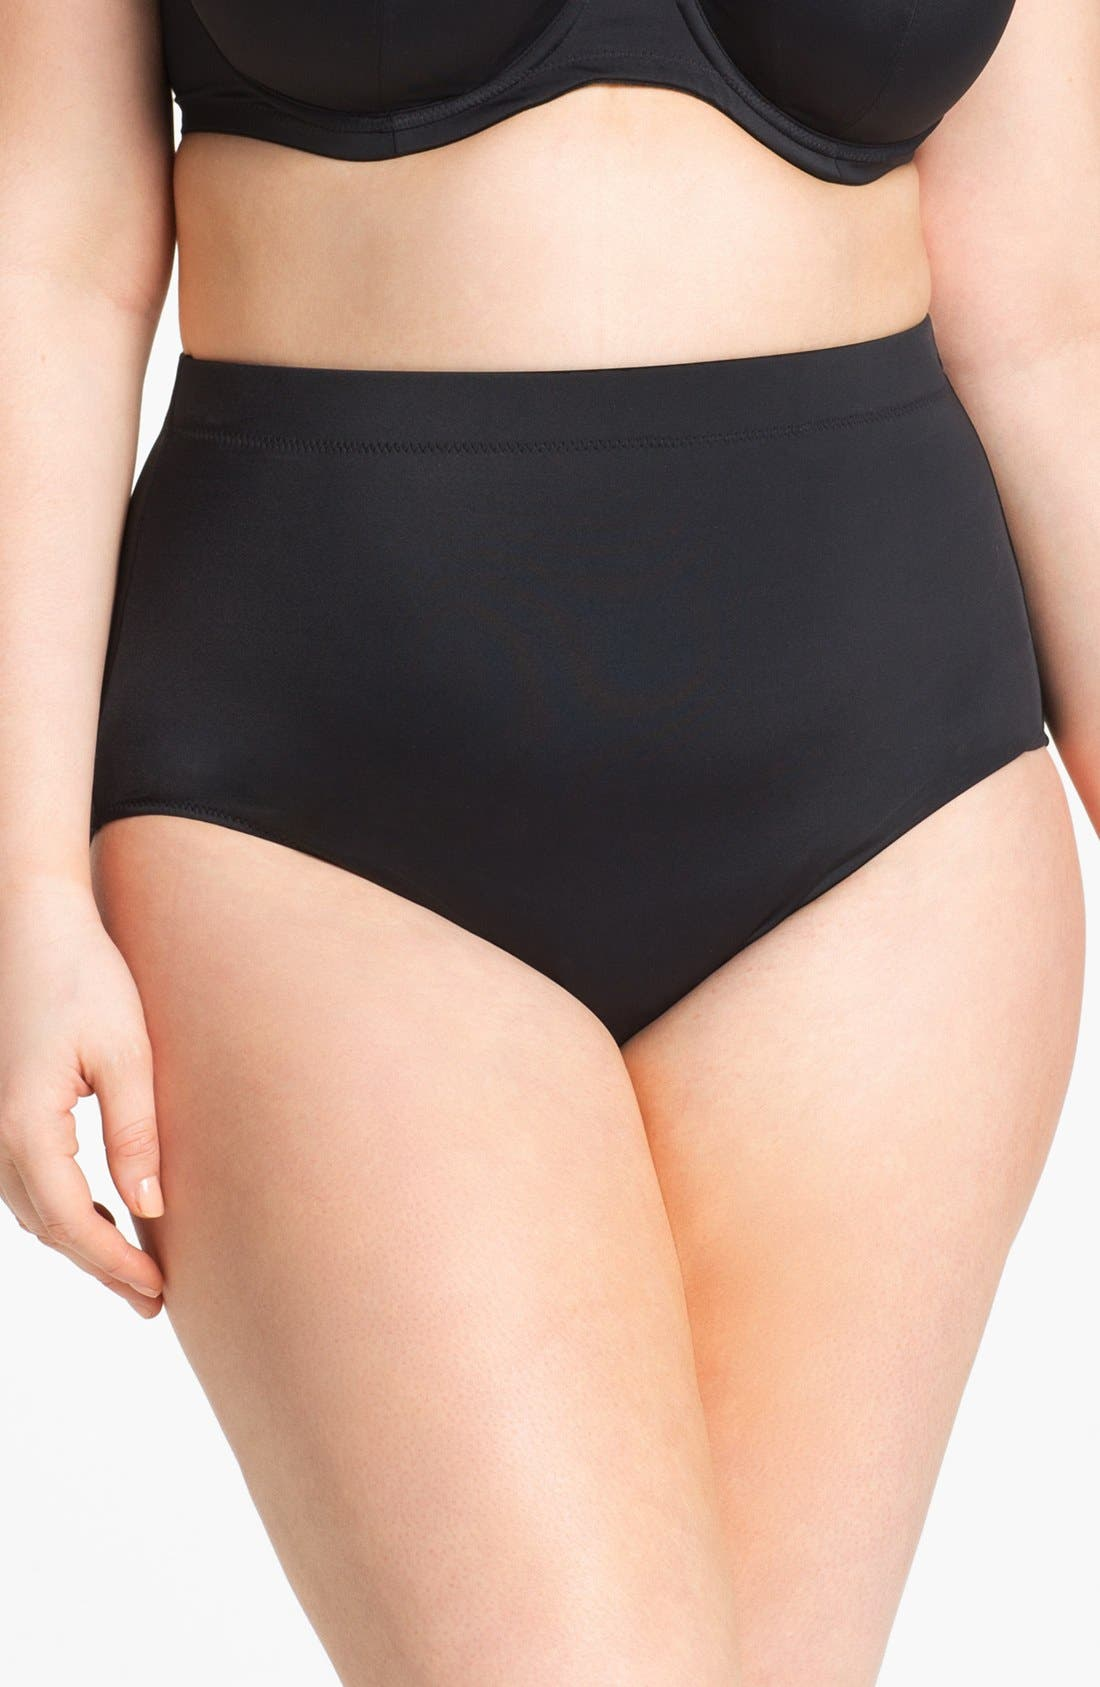 Alternate Image 1 Selected - Elomi 'Elomi Essentials' Classic Swim Briefs (Plus Size)